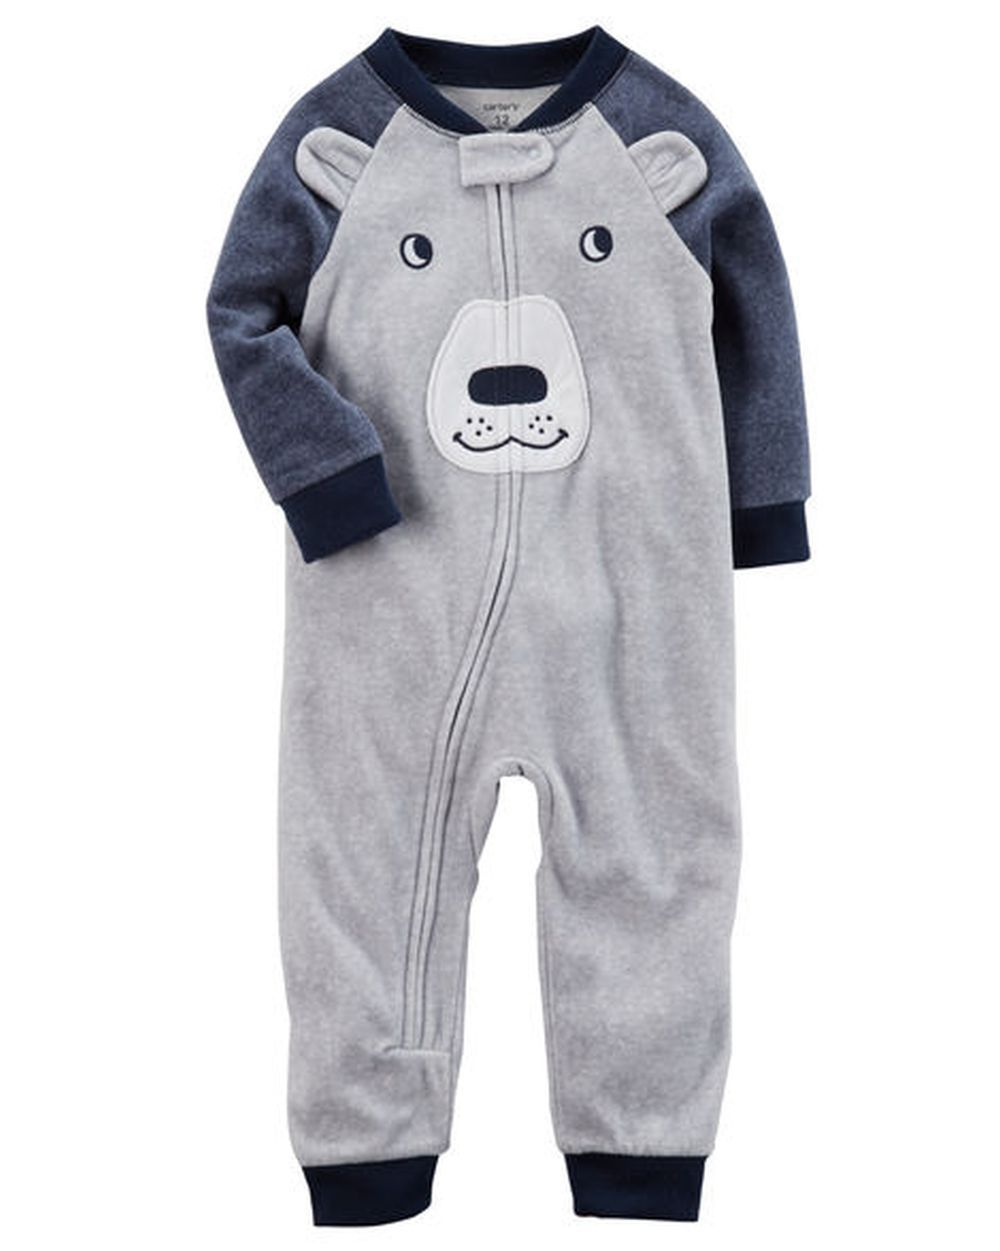 35e87c7ff  14 - Carter s 1 Piece Fleece Bear Face Gray Blue Pjs Boys Nwt 12M ...